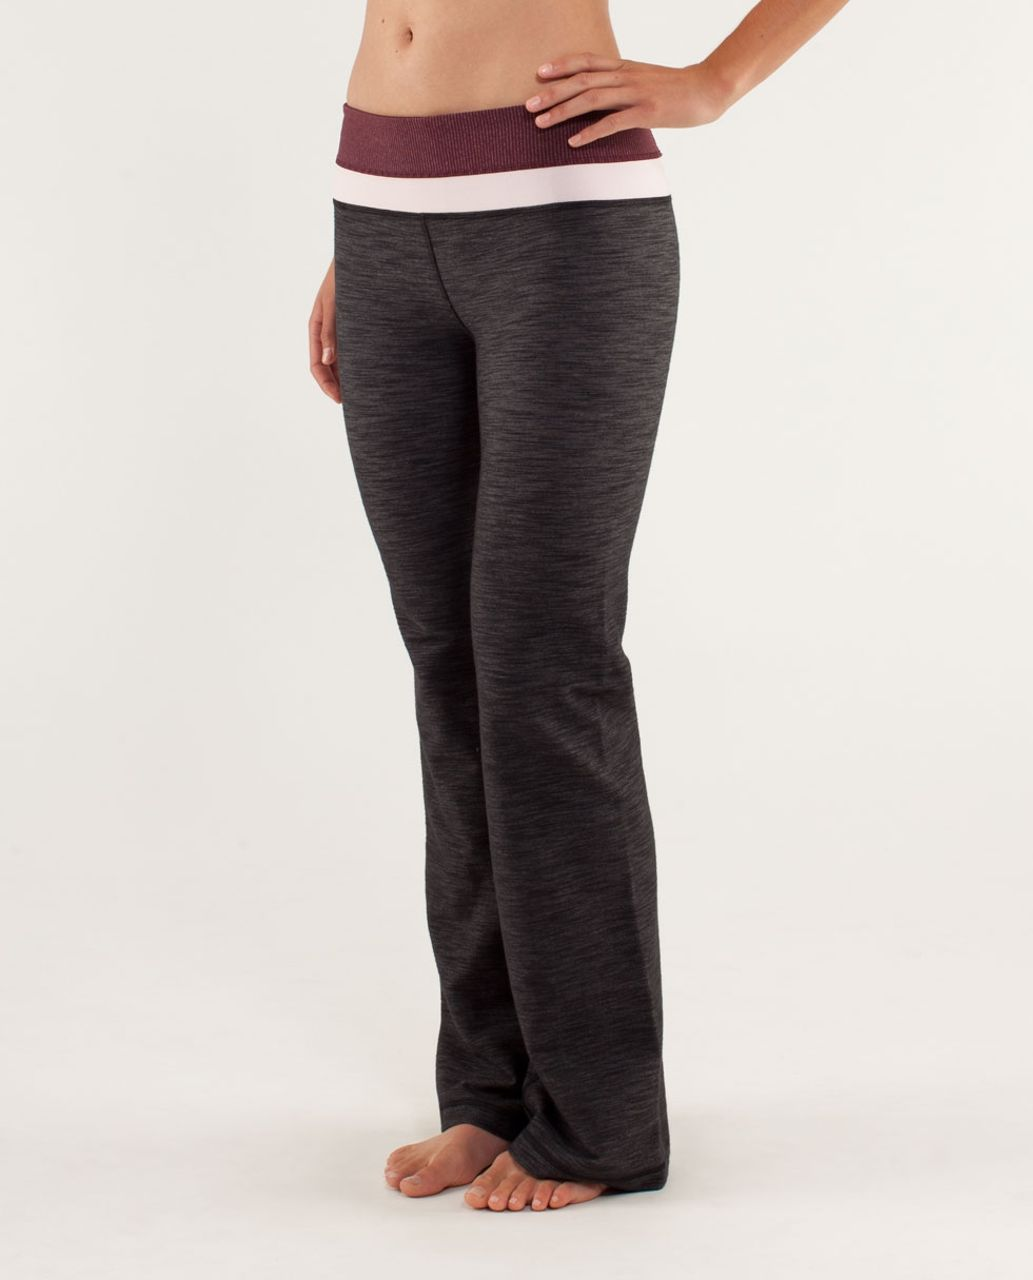 Lululemon Groove Pant *Denim (Tall) - Black Slub Denim / Tonka Stripe Bordeaux Drama / Heathered Bordeaux Drama / Heathered Pret